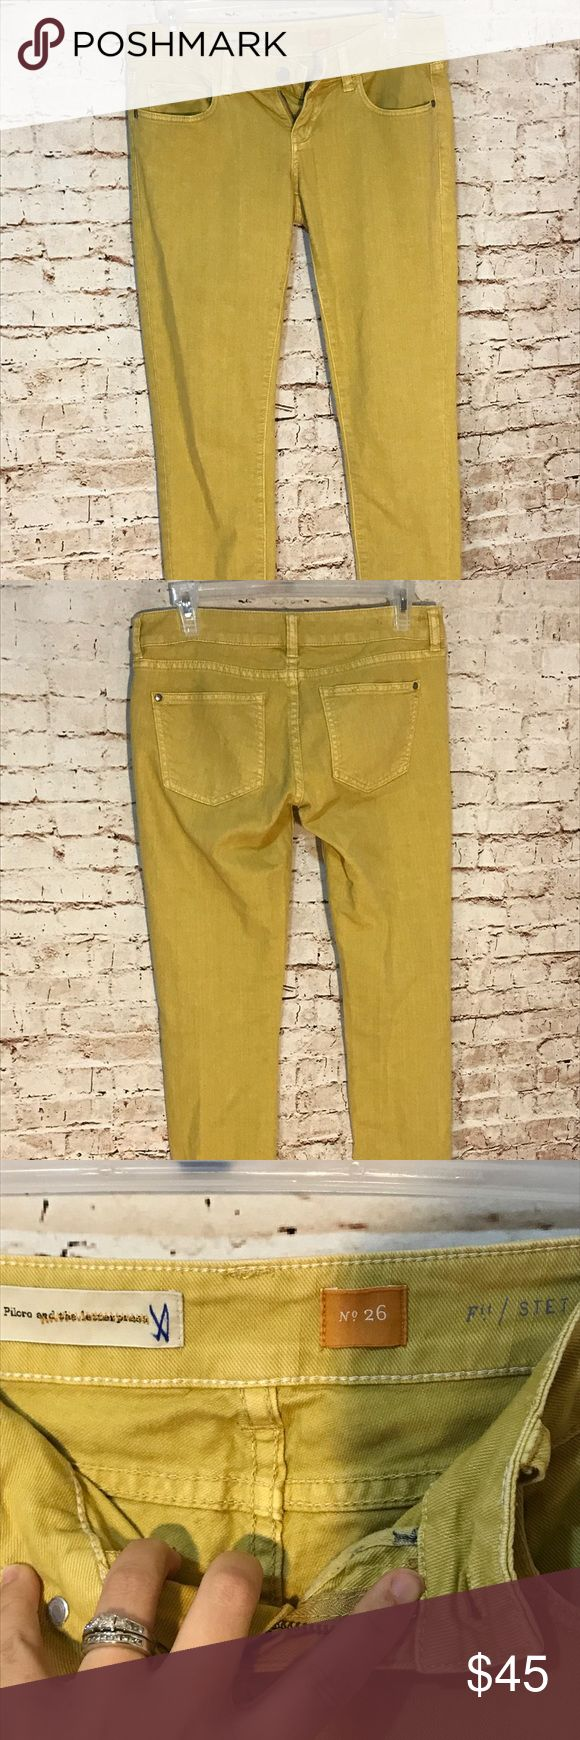 Pilcro and the letterpress mustard skinny jeans Pilcro and the letterpress size 26 mustard color skinny jeans. Soft, buttery material, these feel very worn in but were only worn once or twice! Small scuff on bottom of left leg but I am sure they could be stain washed to remove 😊 Anthropologie Pants Skinny